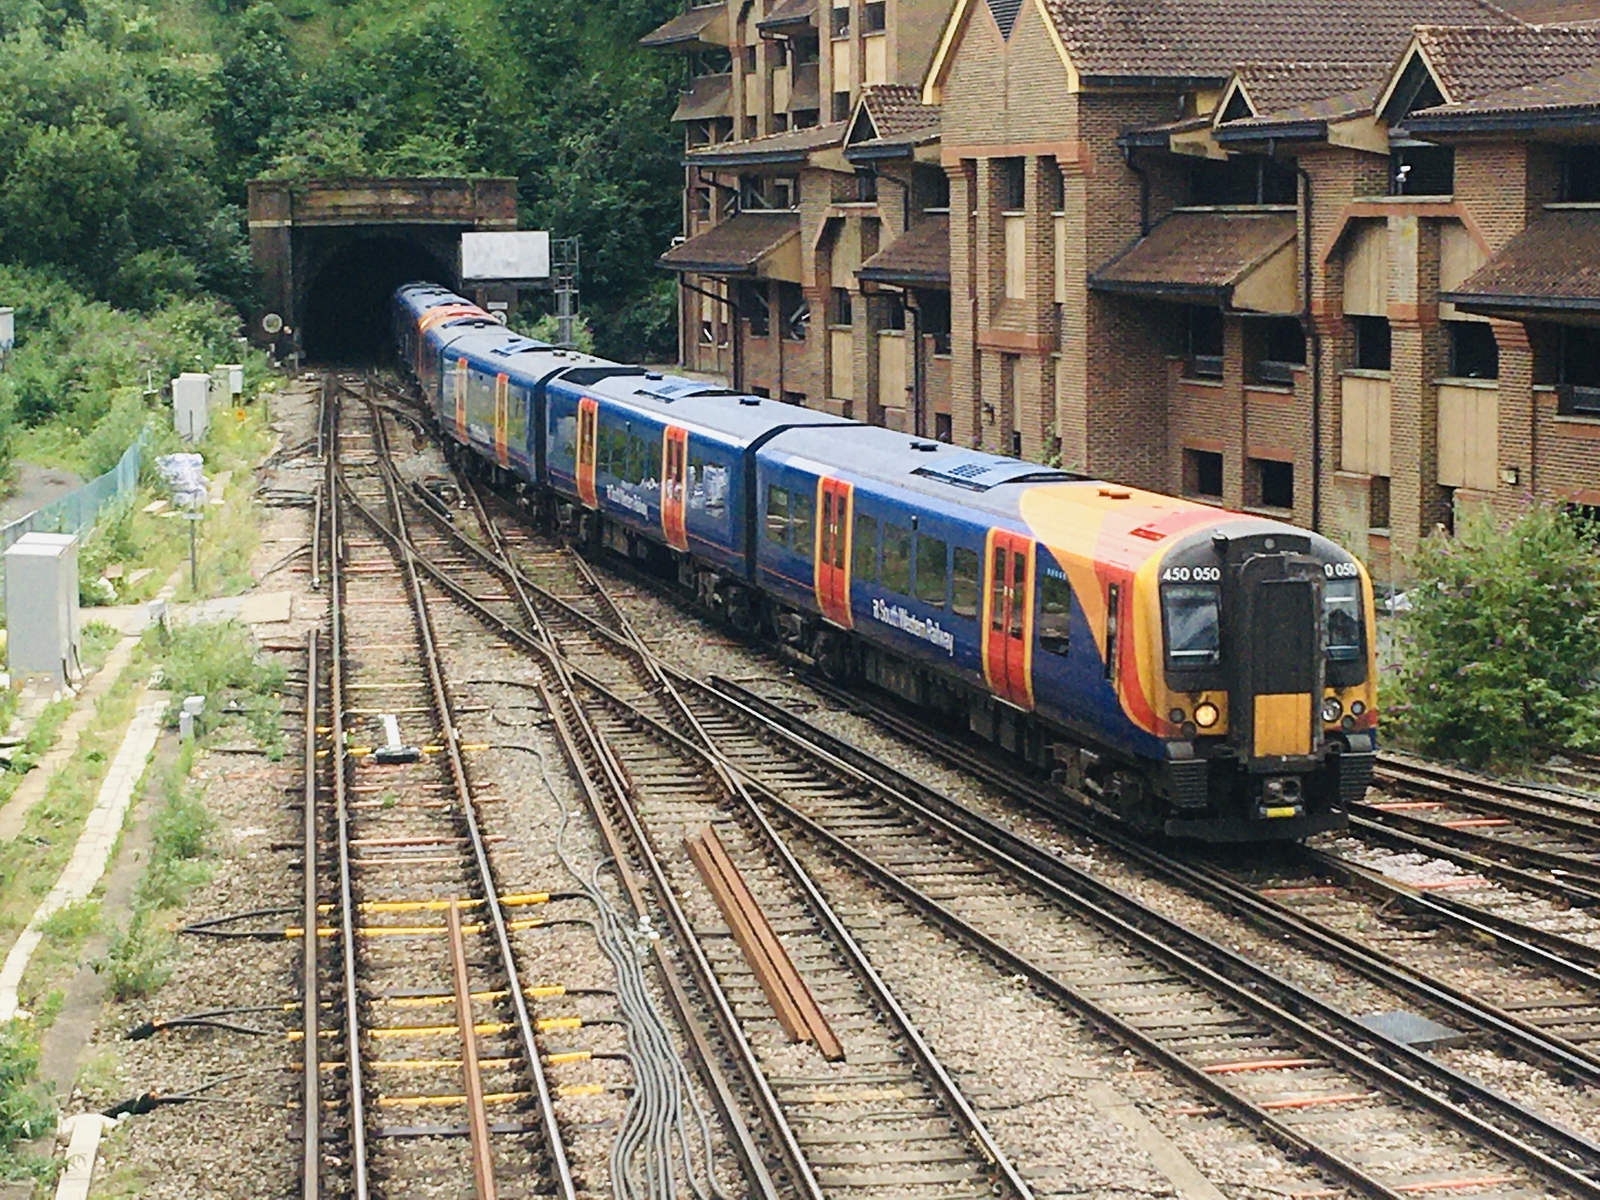 South Western Railway Class 450 Desiro emerges from Chalk Tunnel at Guildforf